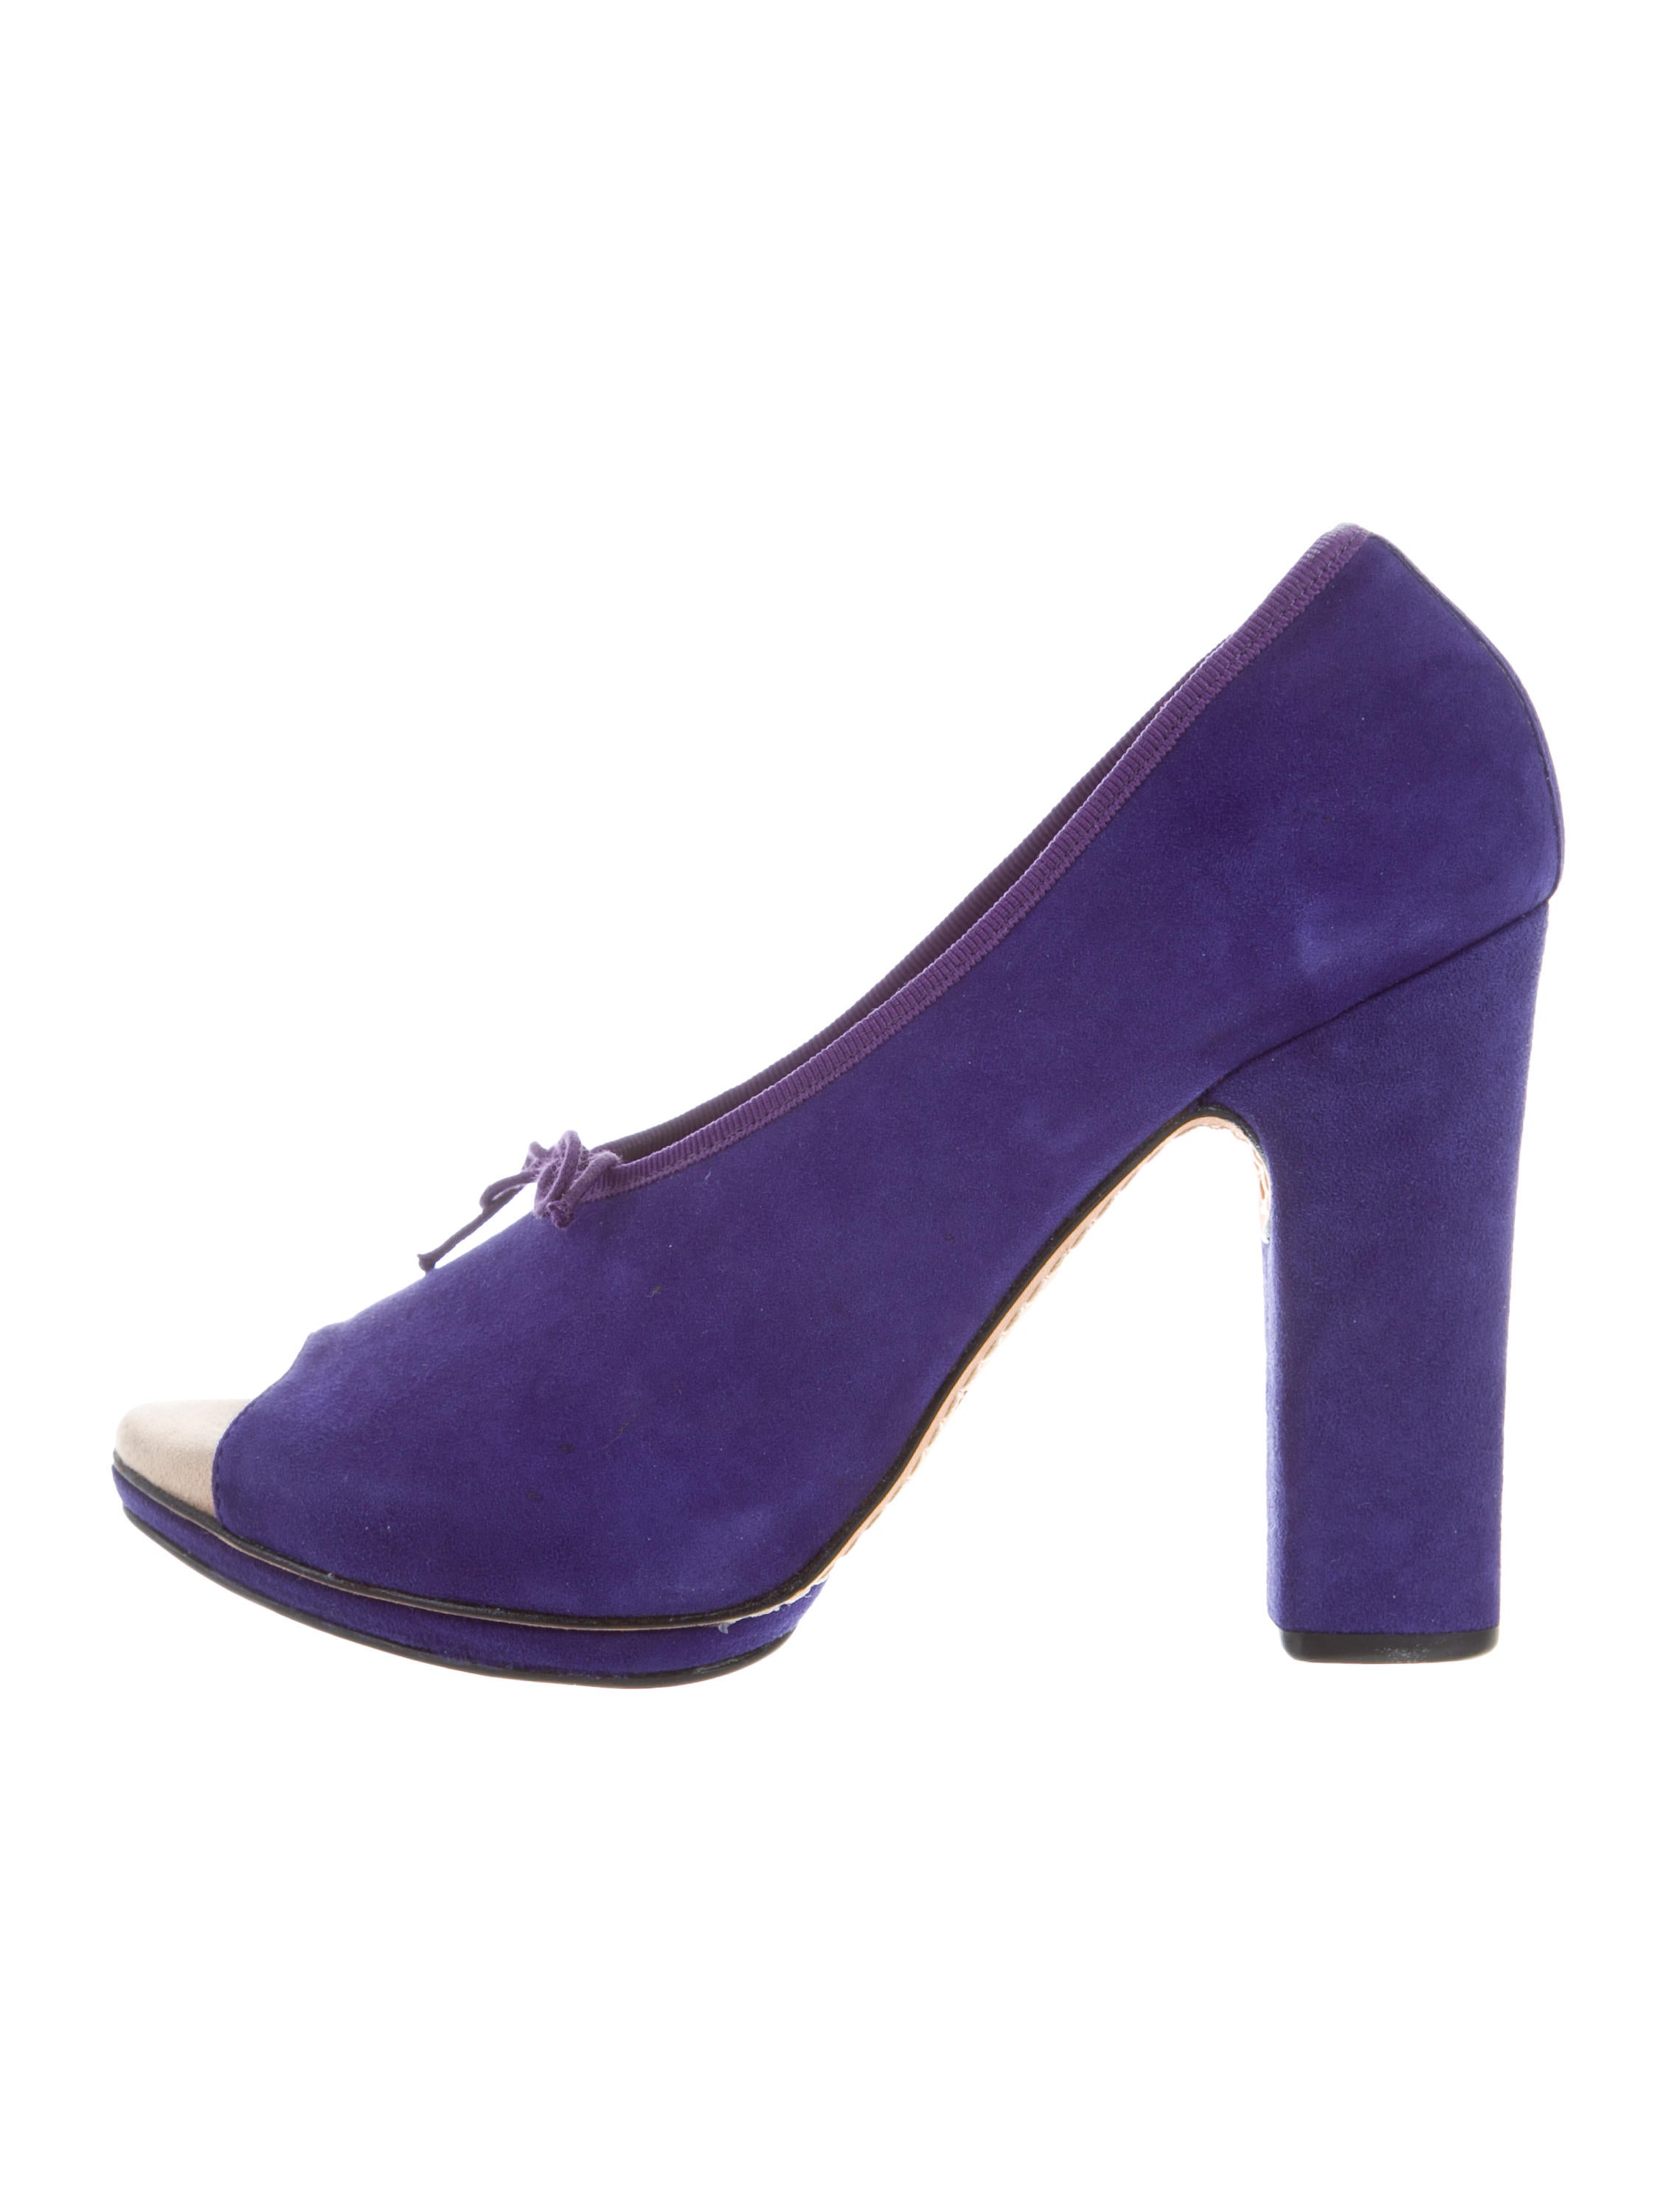 Repetto Peep-Toe Suede Pumps